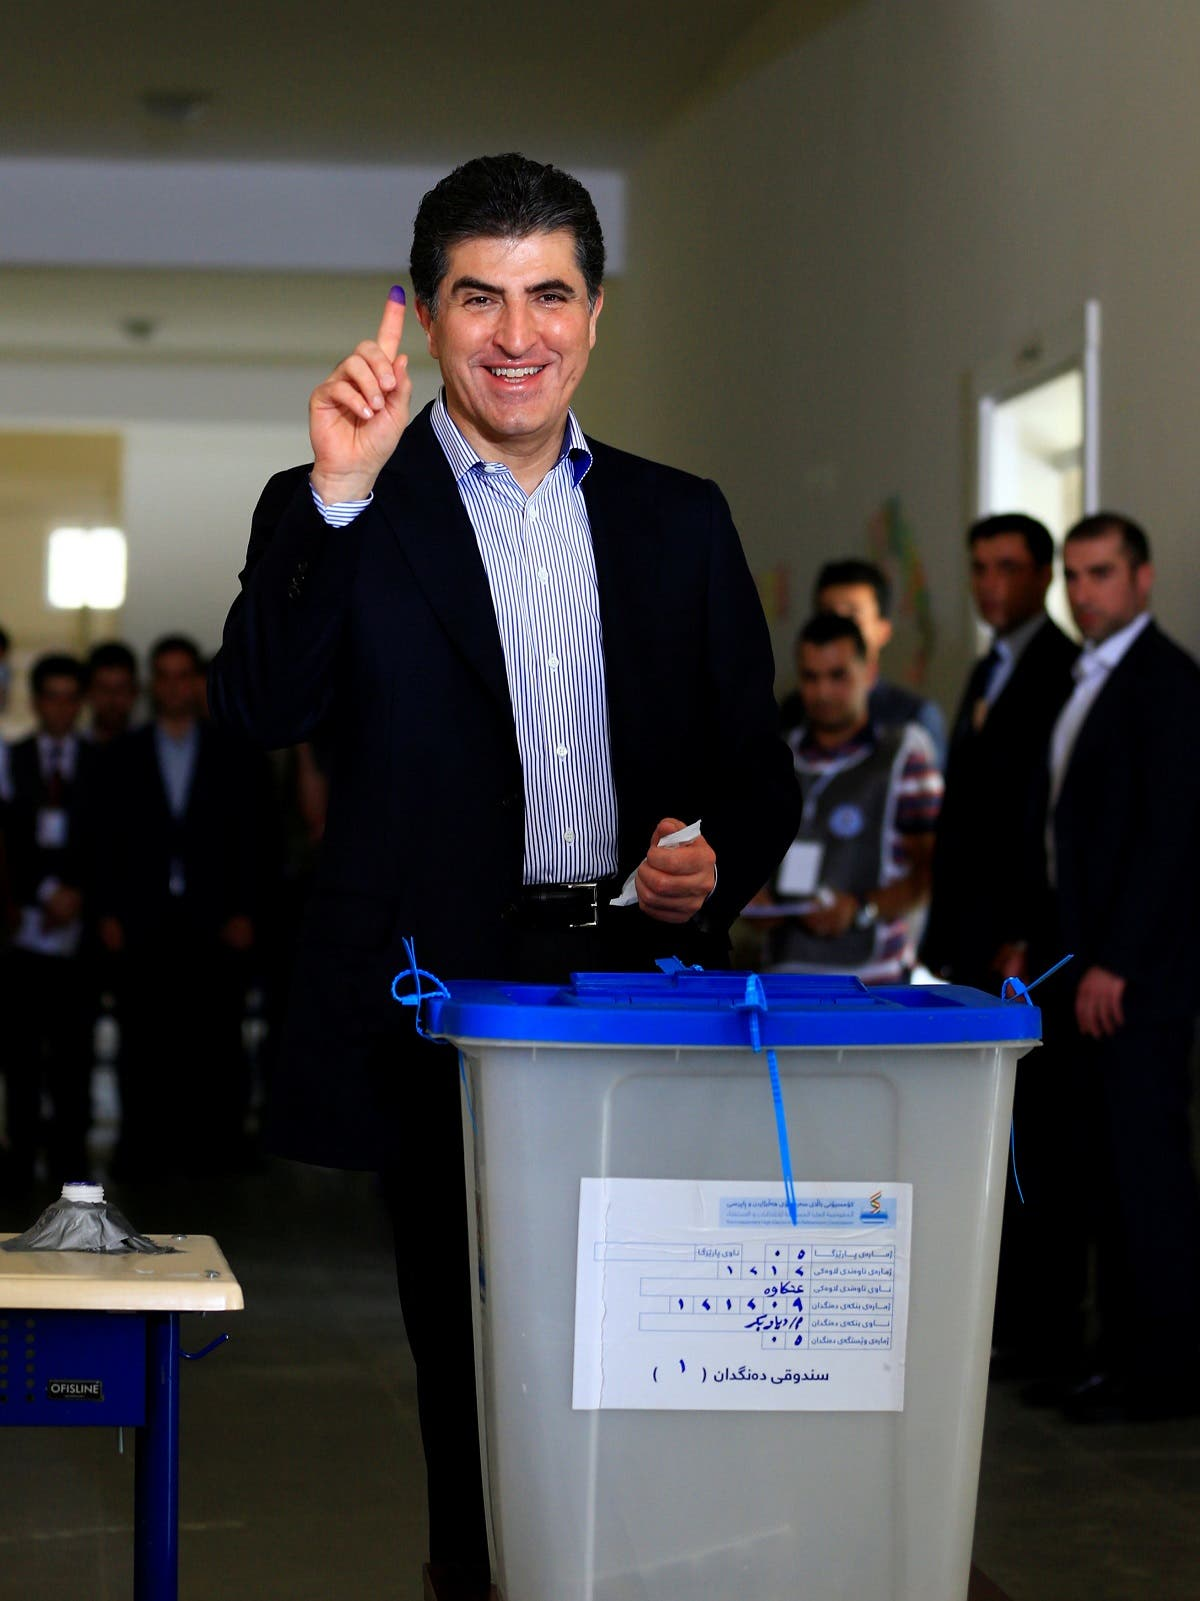 Kurdistan Regional Government Prime Minister Nechirvan Barzani casts his vote at a polling station during parliamentary elections in the semi-autonomous region in Erbil, Iraq September 30, 2018. (Reuters)